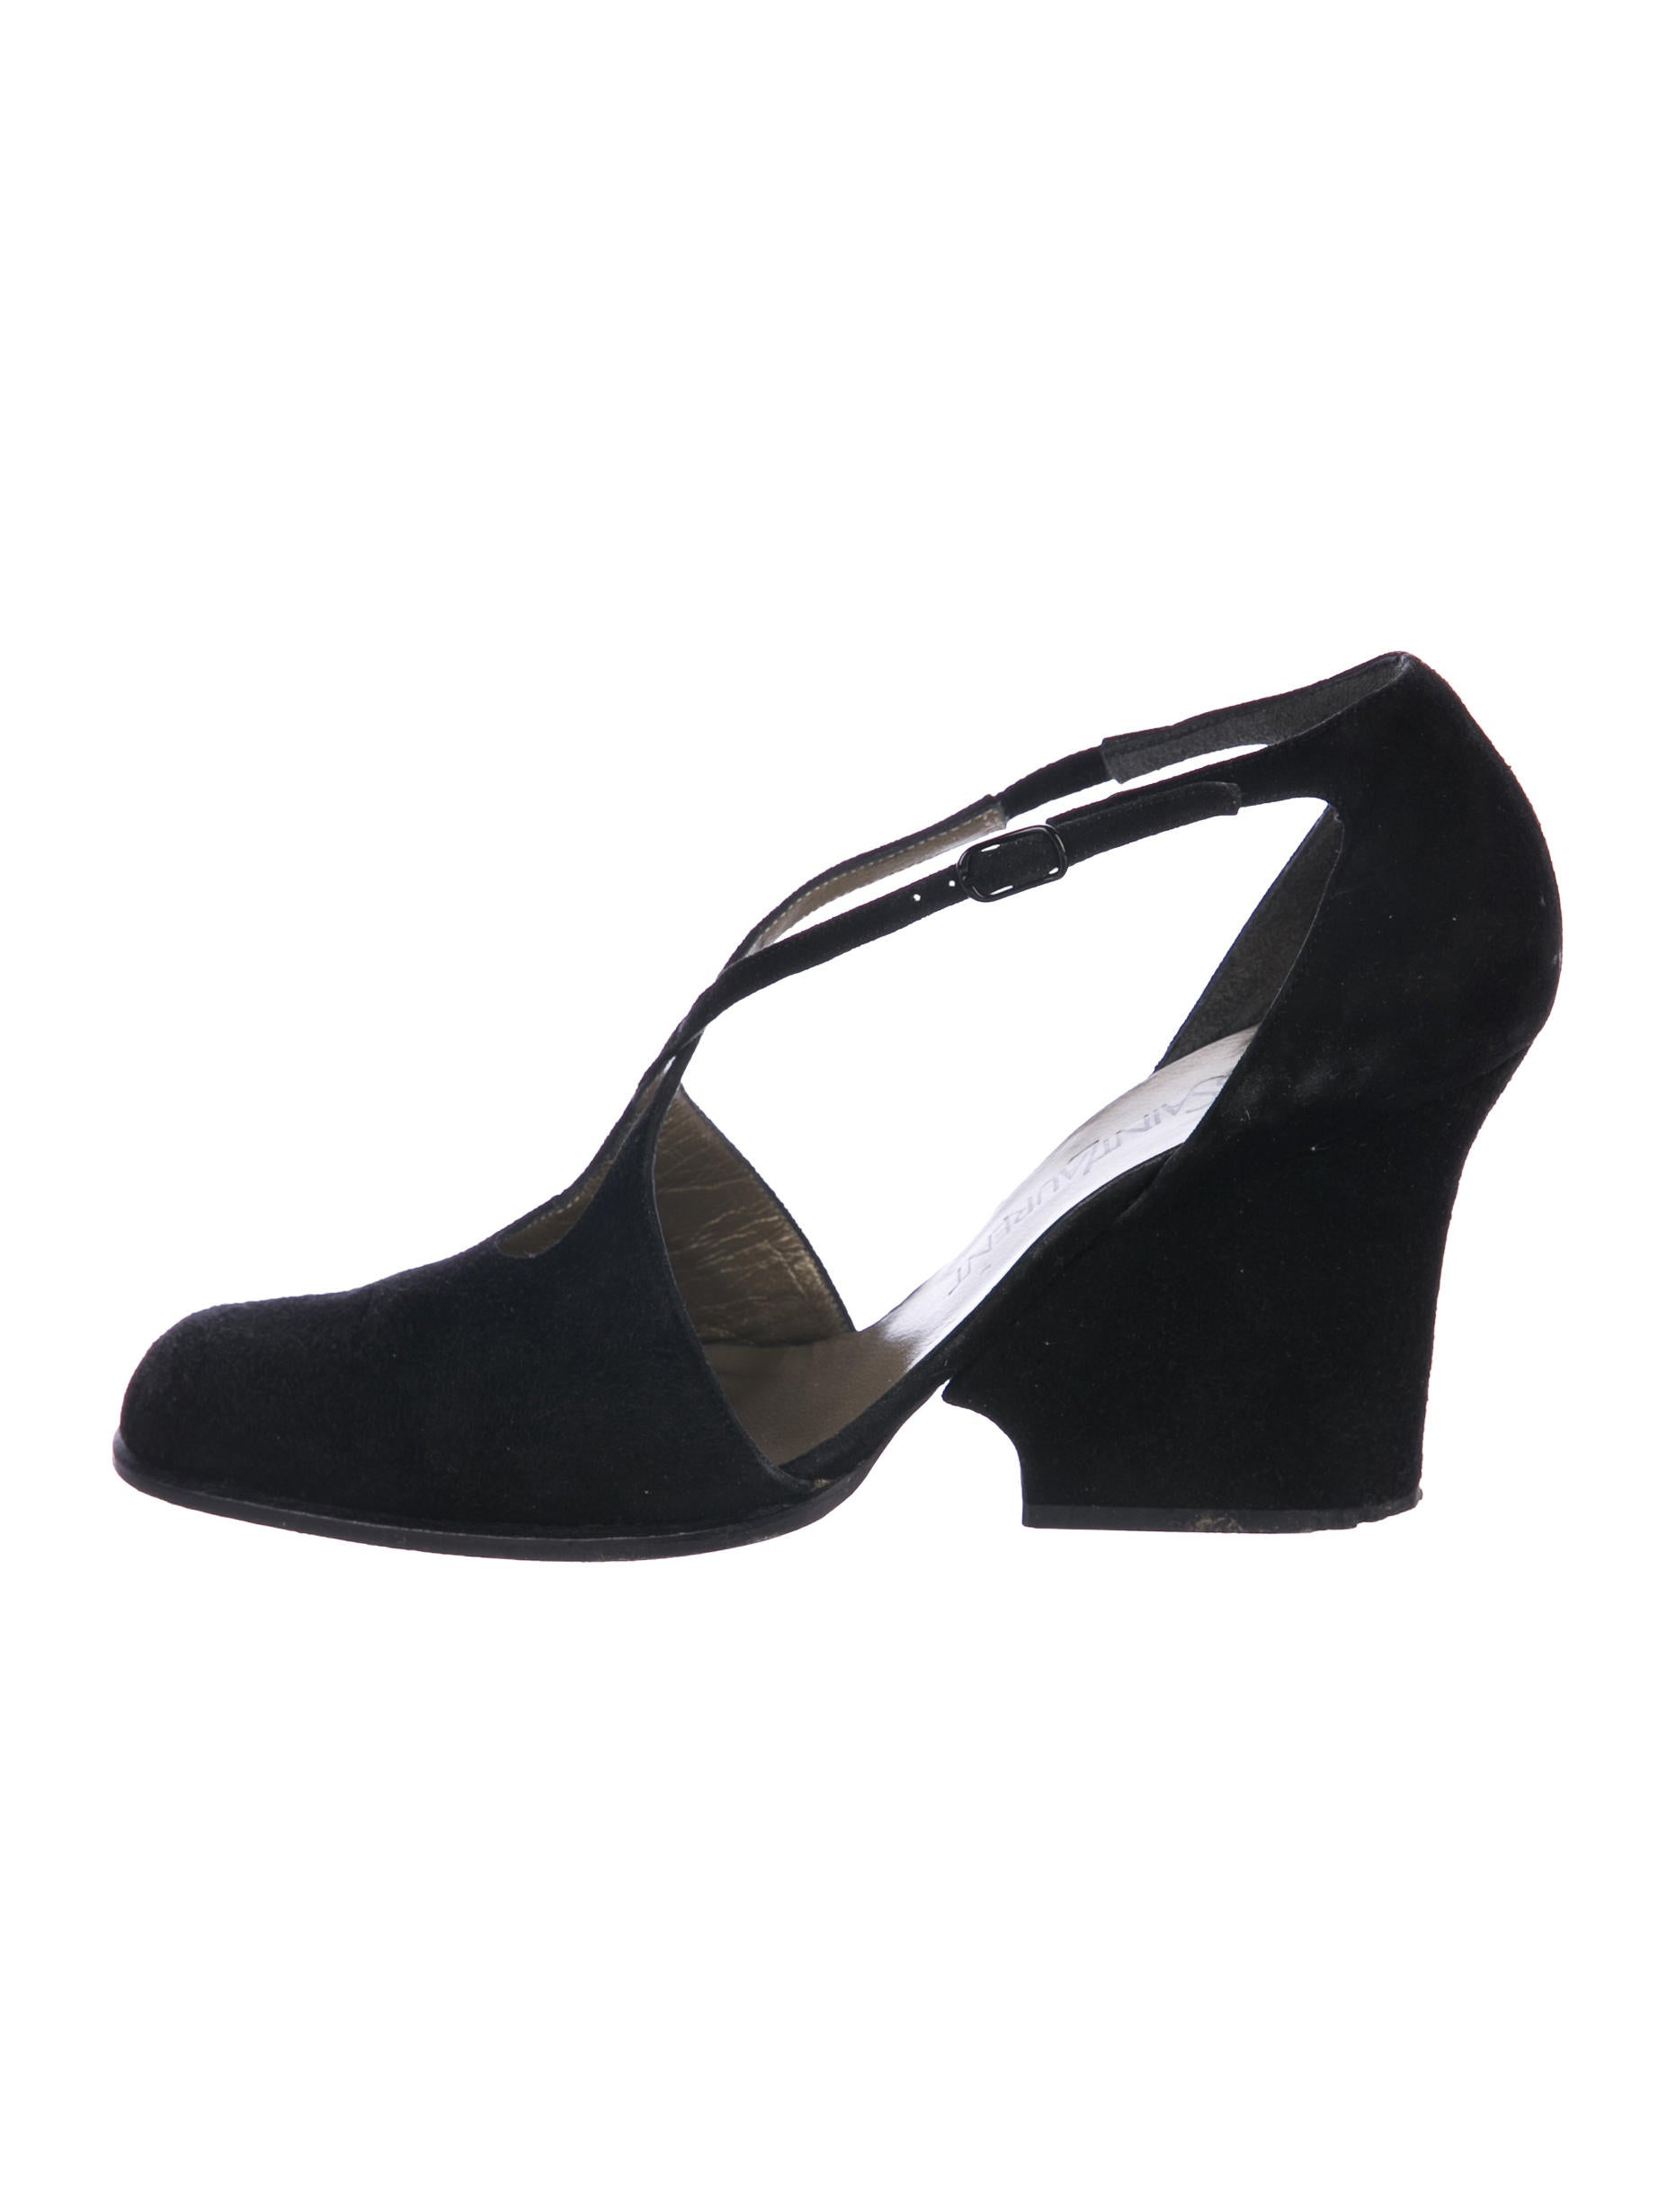 Yves Saint Laurent Suede Round-Toe Wedge Pumps footaction online wide range of for sale 72z6pxTC2